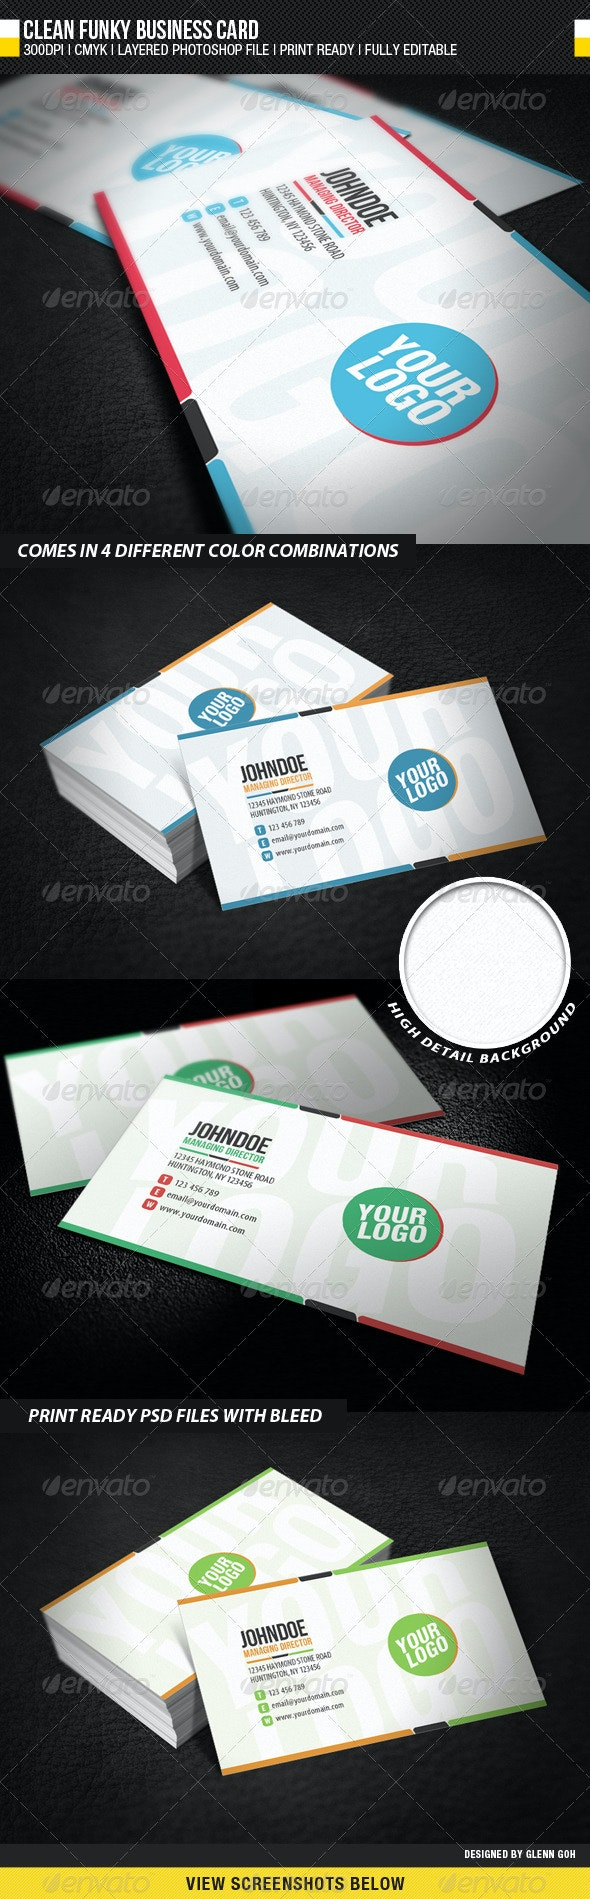 Clean Funky Business Card - Creative Business Cards